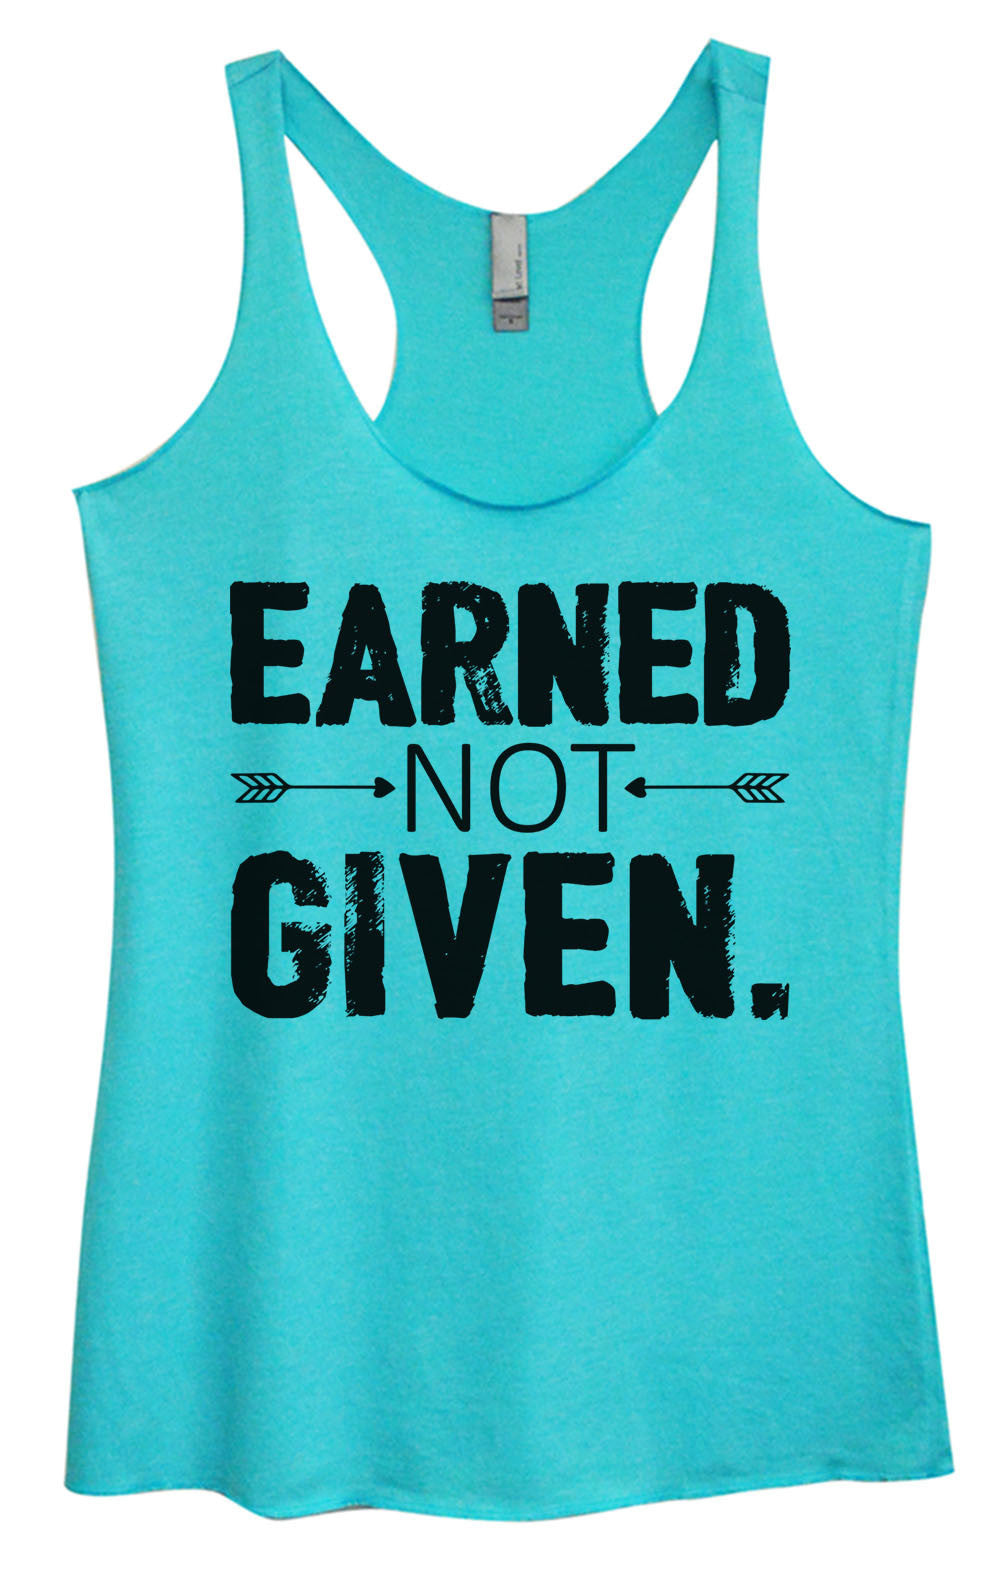 Womens Fashion Triblend Tank Top - Earned Not Given - Tri-918 - Funny Shirts Tank Tops Burnouts and Triblends  - 2